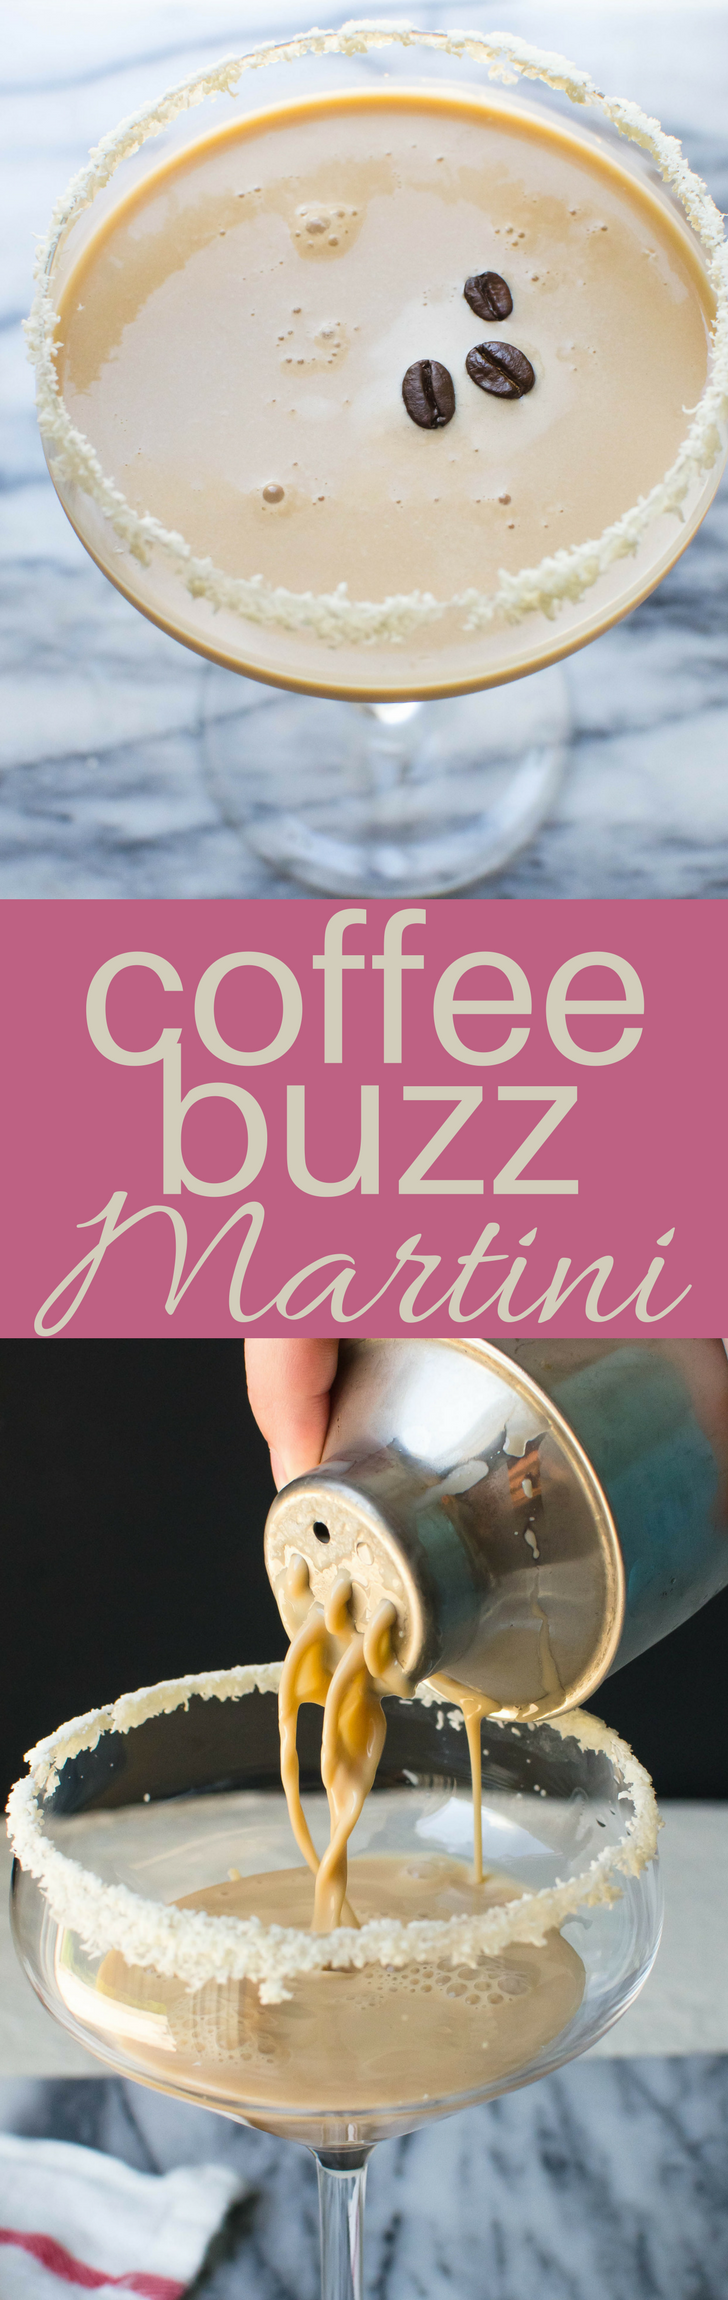 This easy Coffee Buzz Martini recipe is a cross between cocktails & dessert! Kahlua, Irish cream, vodka, coffee simple syrup & half and half, shaken with ice will sneak up on you! #cocktails #cocktail #martini #coffee #espresso #kahlua #irishcream #baileys #halfandhalf #simplesyrup #vodka #newyearseve #dessertcocktail #dessert #alcoholicbeverage #libations #drinks #shakenmartini